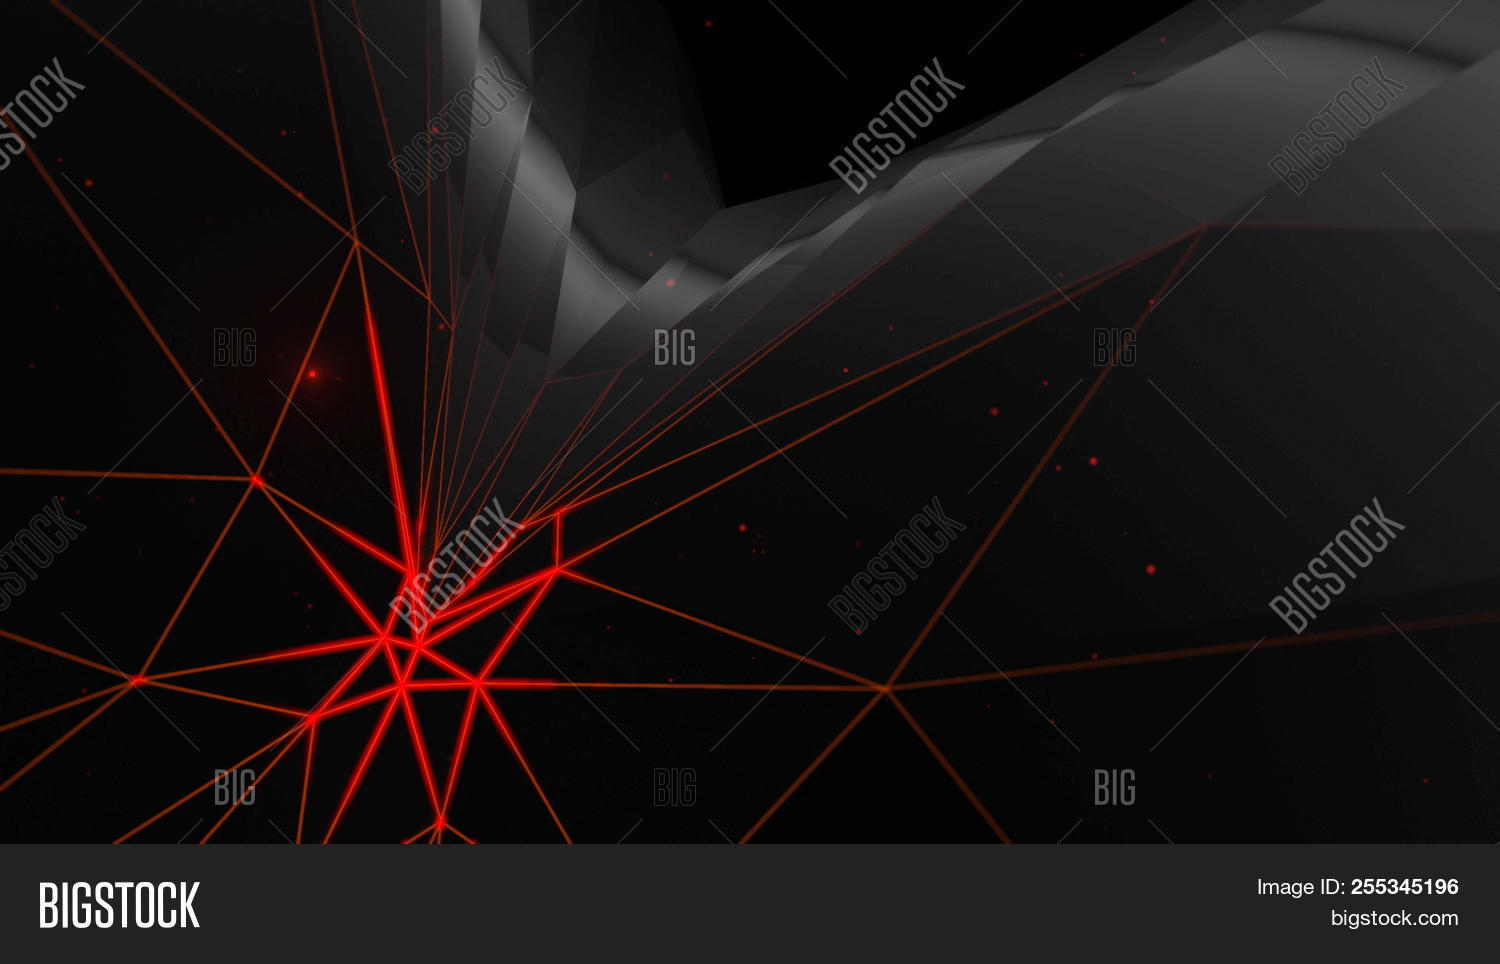 Black Abstract Science Image Photo Free Trial Bigstock